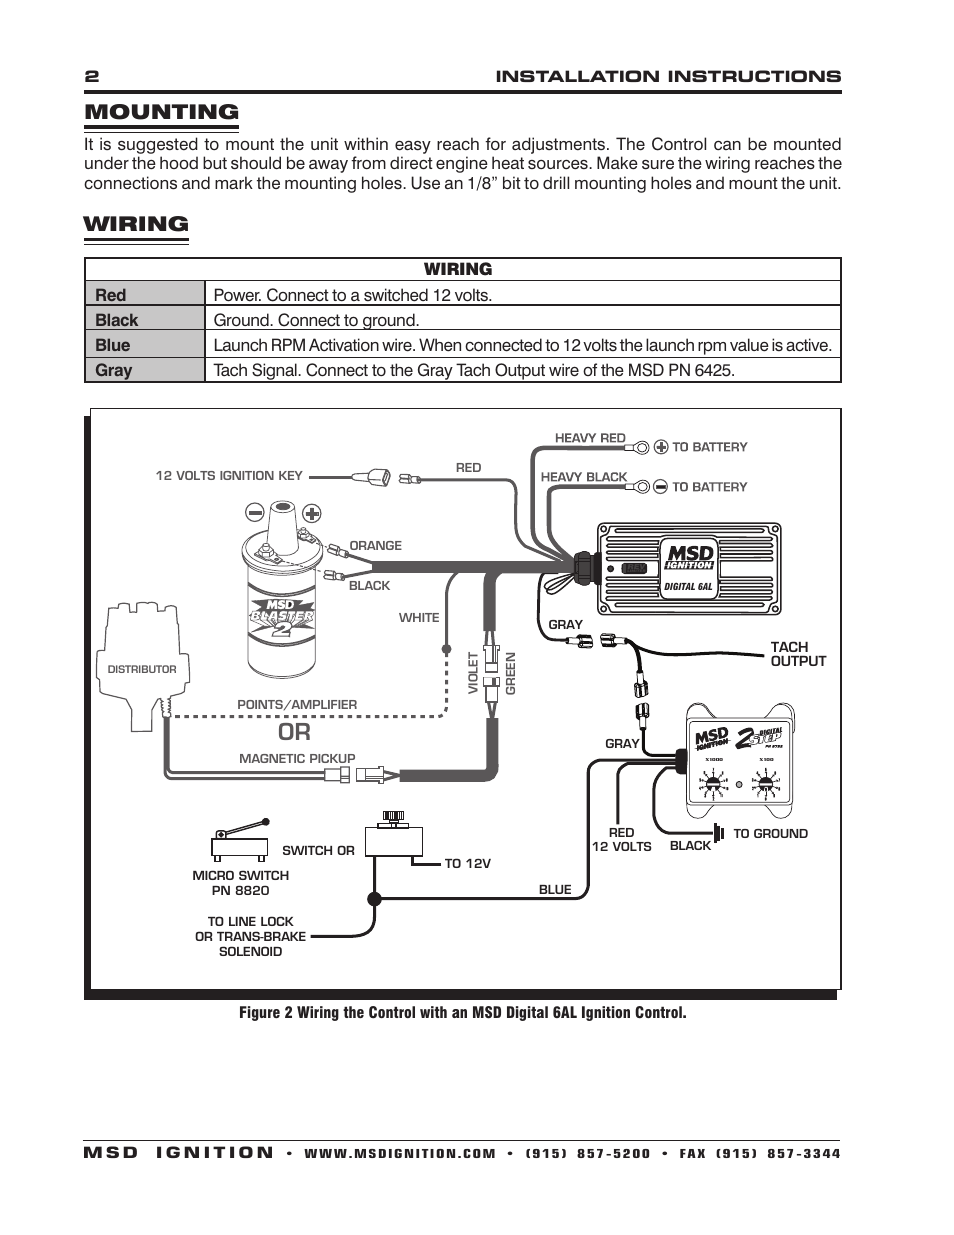 msd 8732 2 step rev control for digital 6al installation page2?resize\\\\\\\\\\\\\\\\\\\\\\\\\\\\\\\=665%2C861 msd 6al wireing question duraspark distributor ffcars on msd MSD Ignition Box Wiring Diagram at gsmx.co